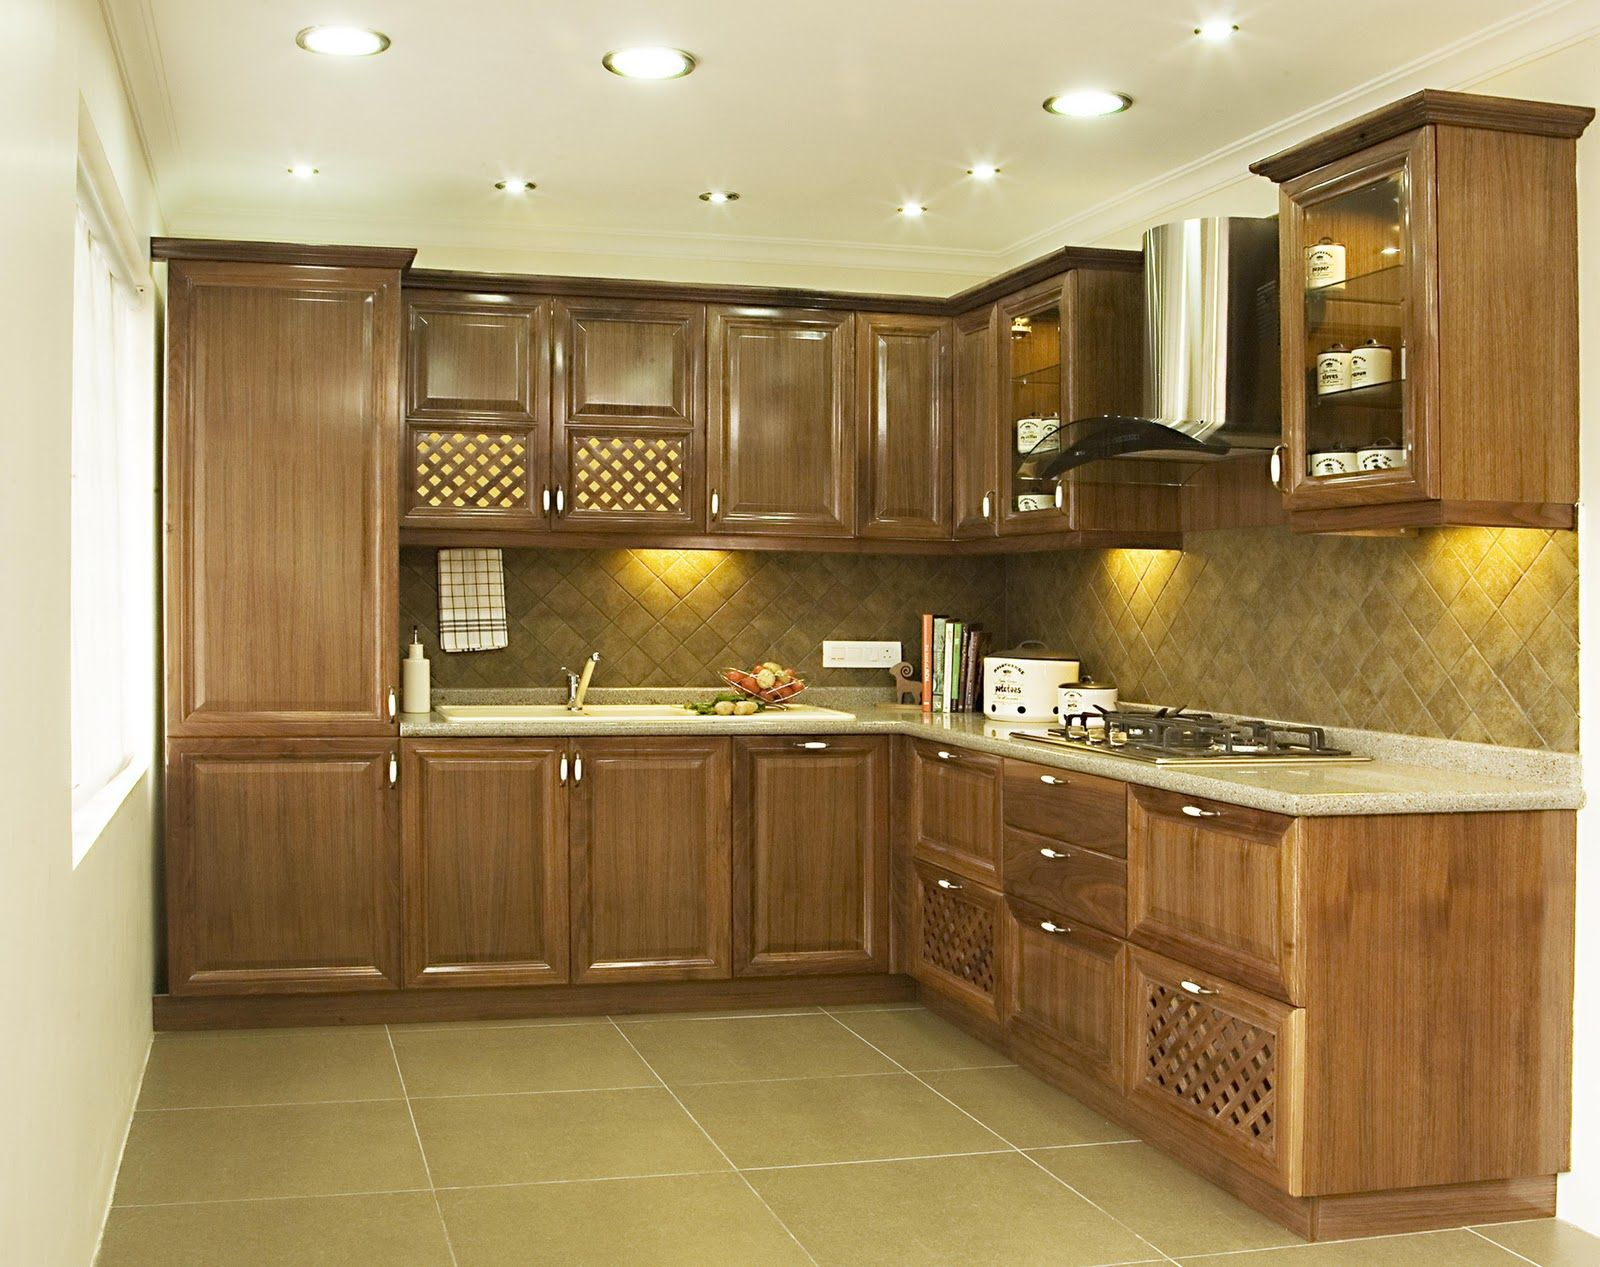 3d Kitchen Design Software Download Free - http://sapuru.com/3d